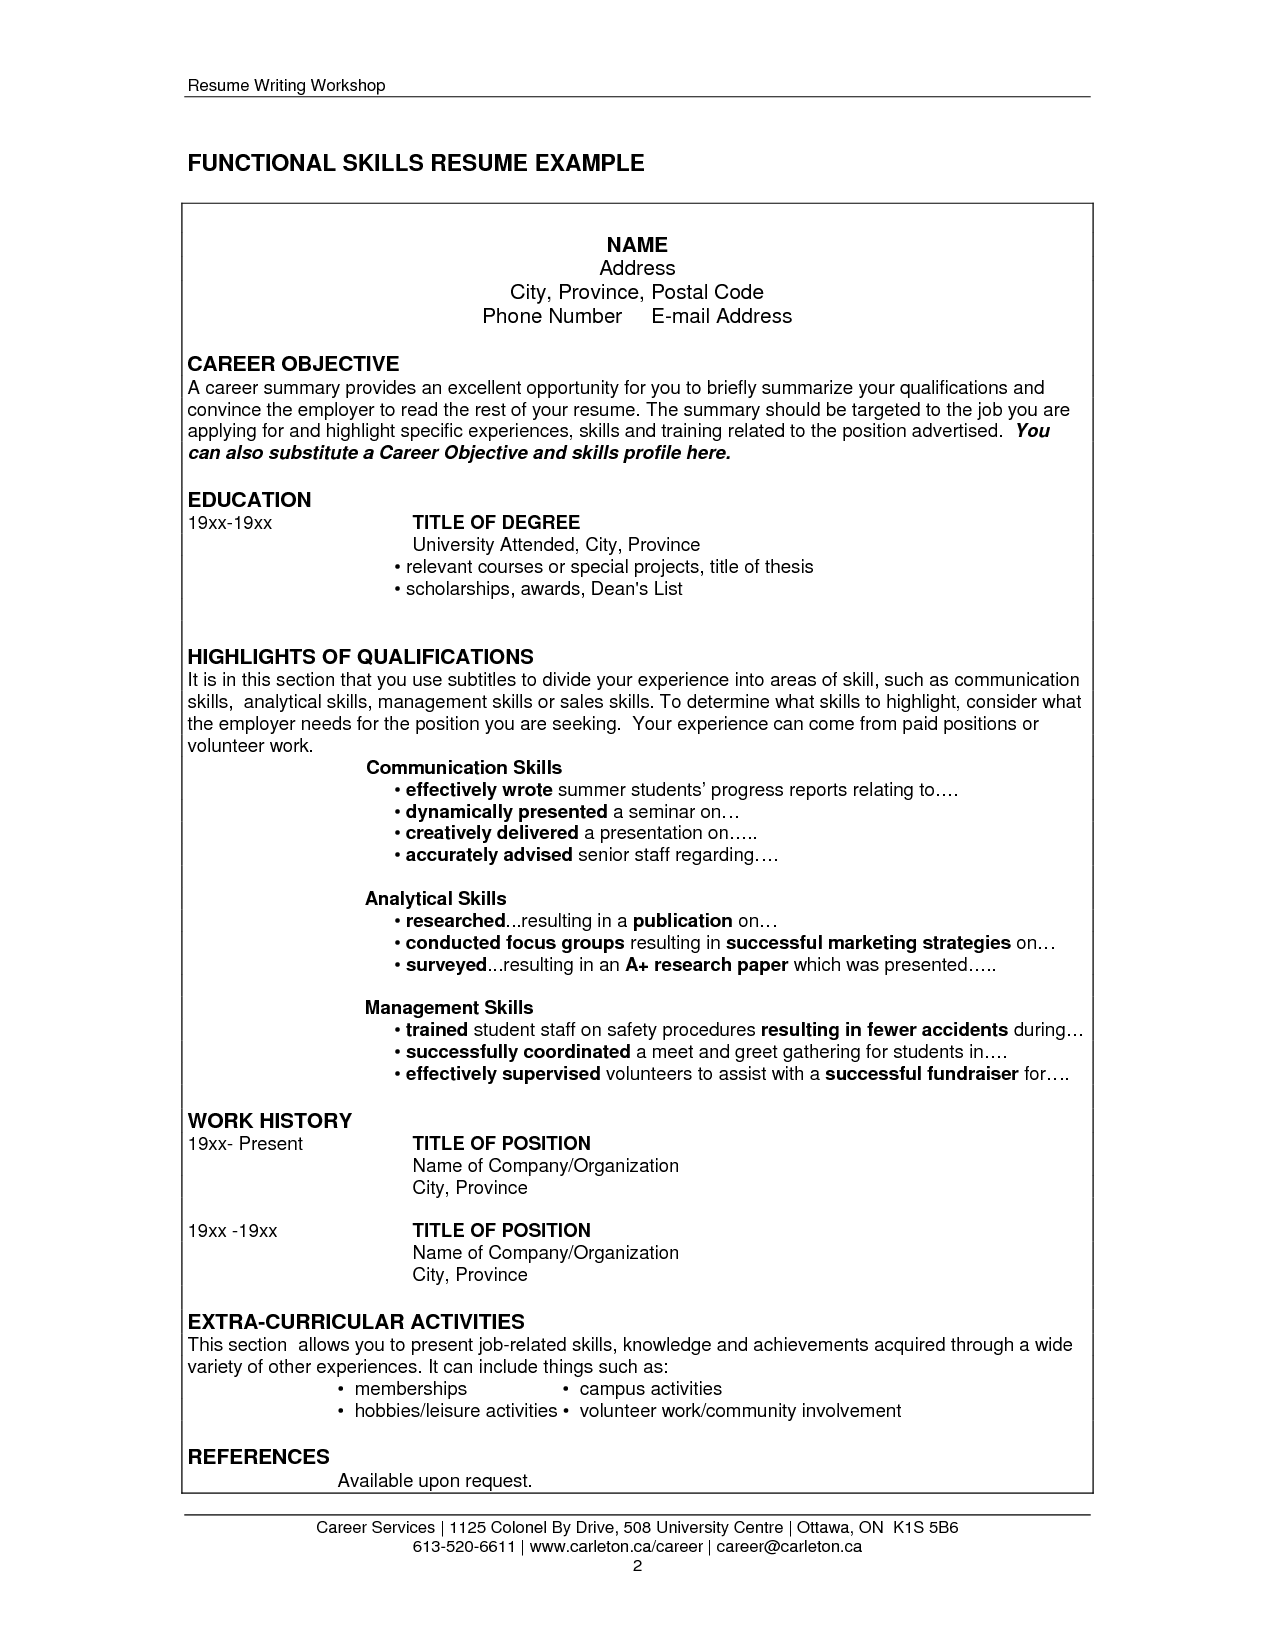 Image Result For Skills Resume Format  Education Resume Format